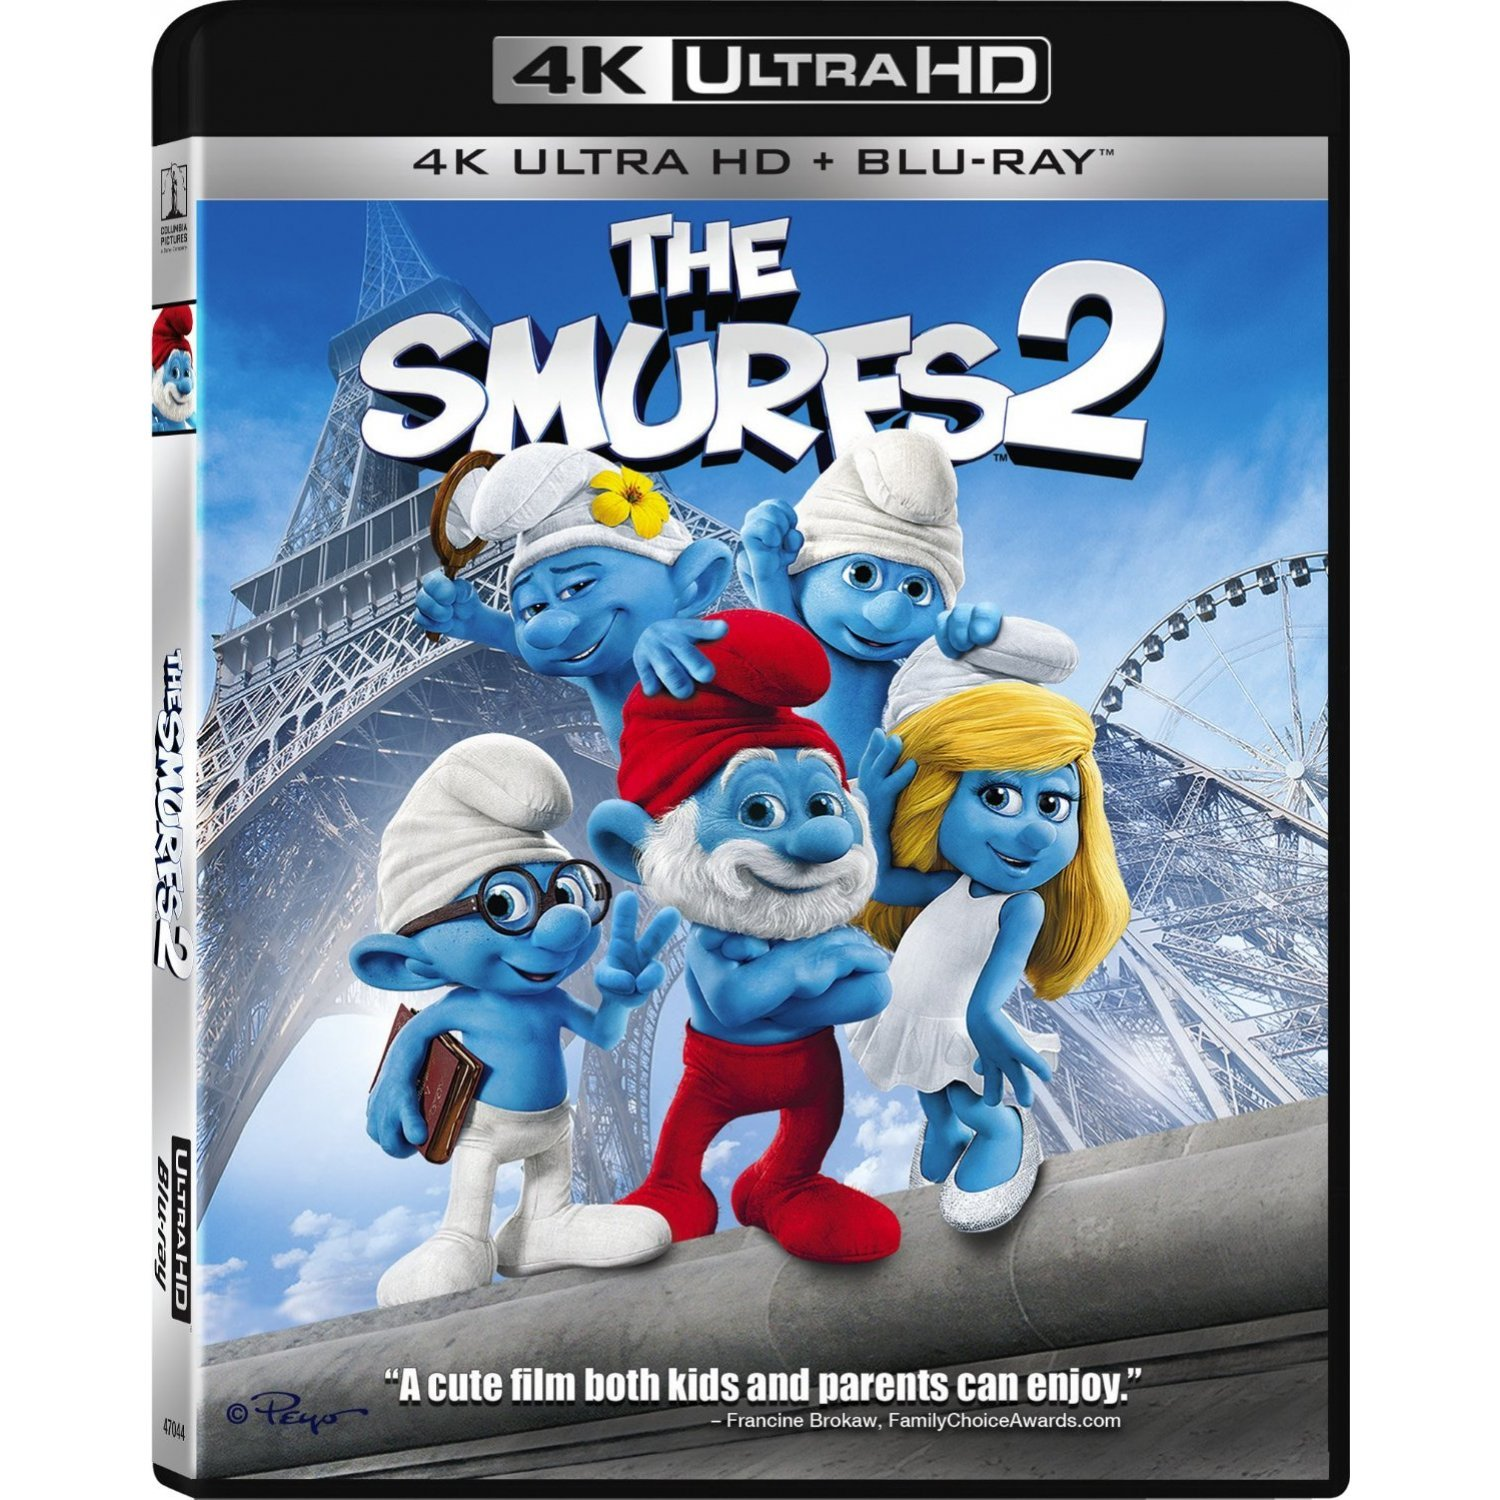 the smurfs 2 [4k uhd blu-ray] playstation® network download